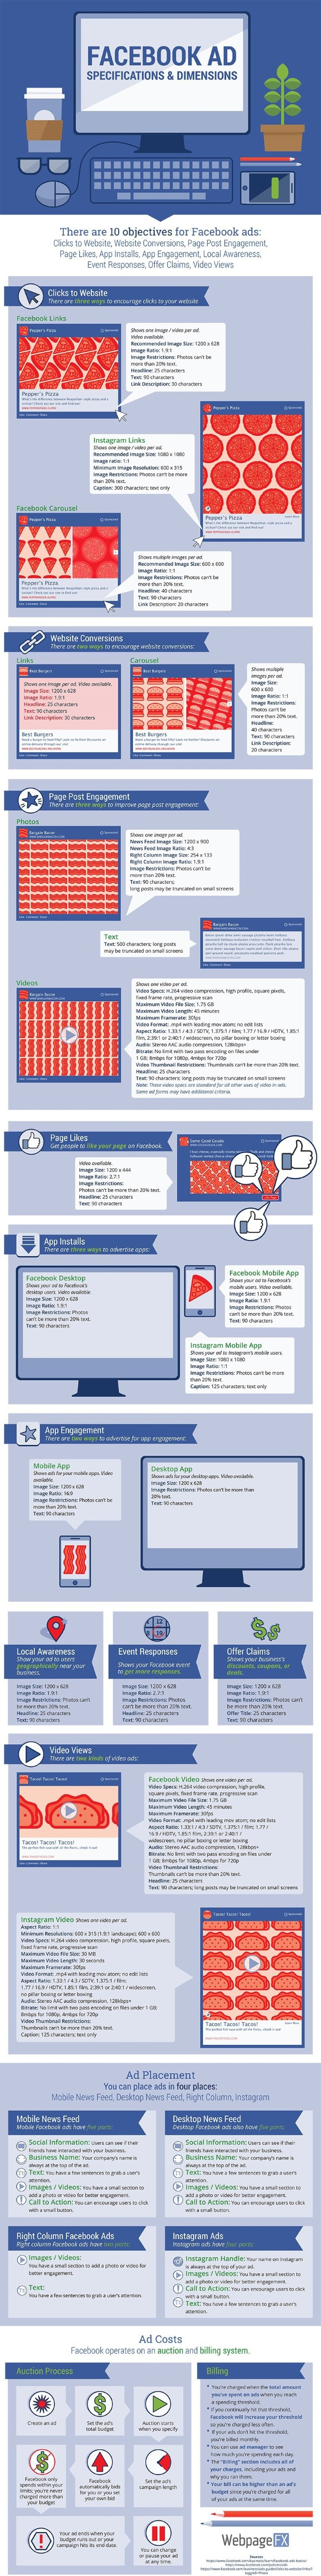 facebook-ad-anatomy-infographic